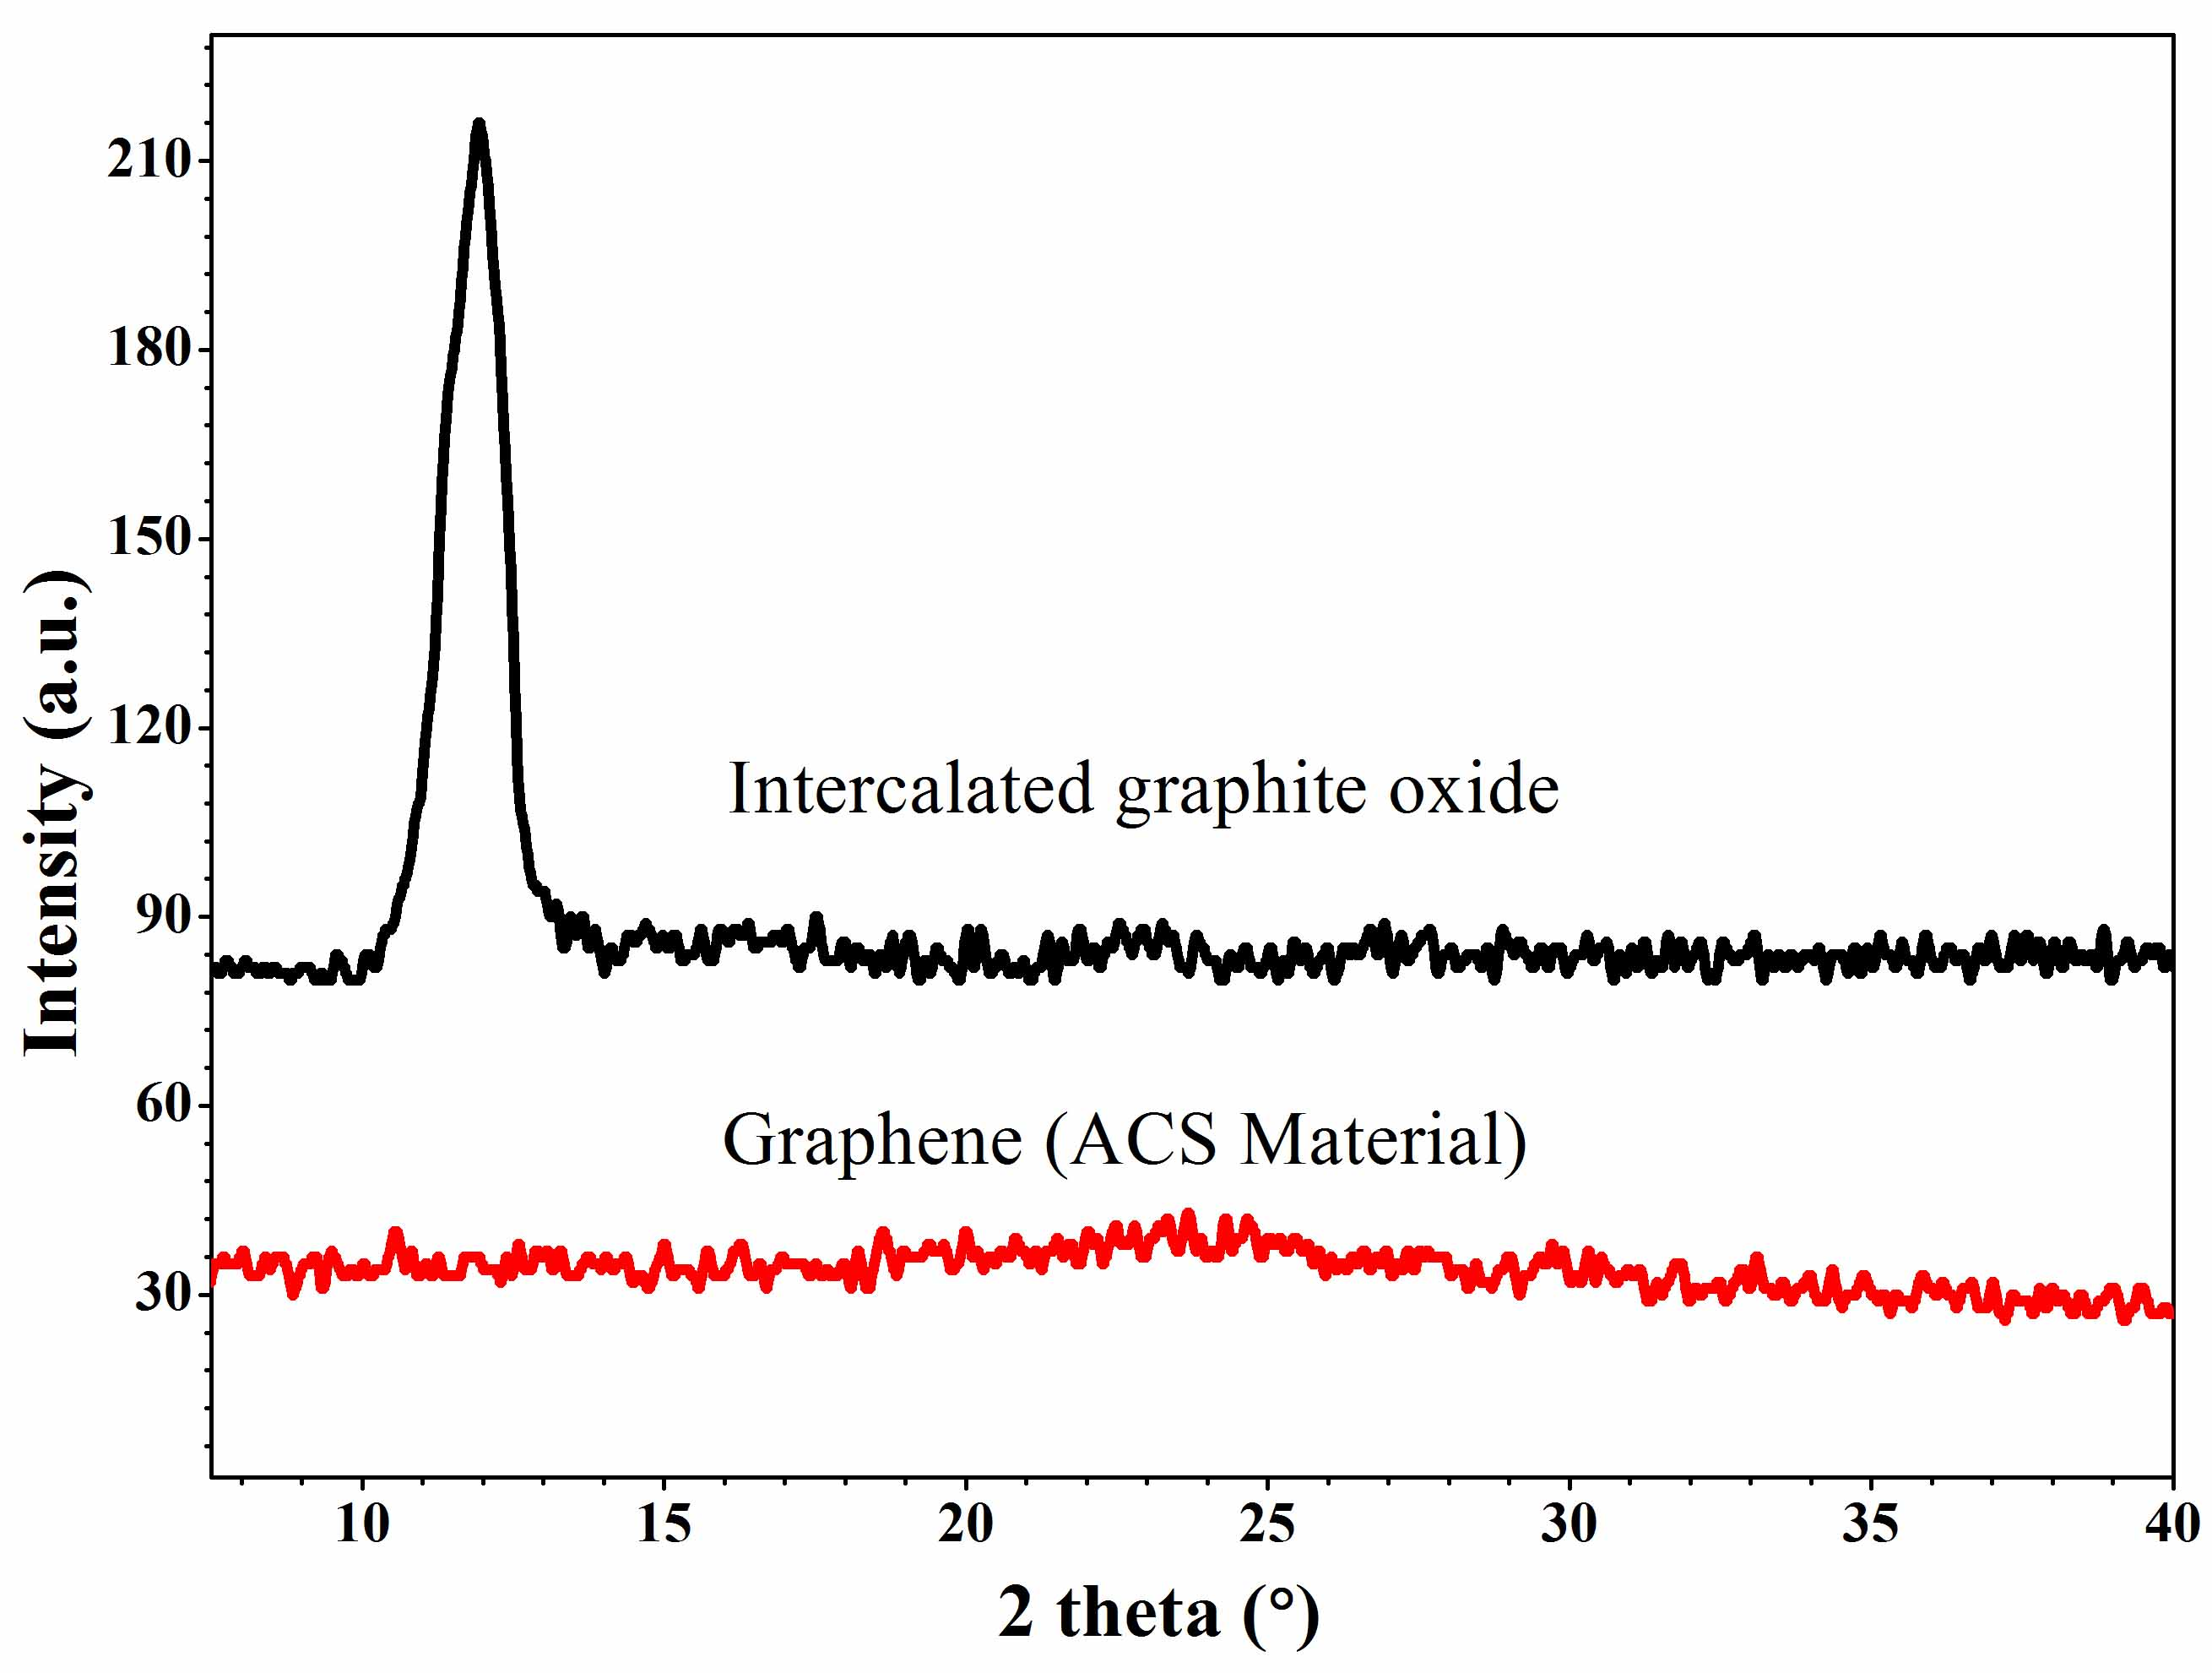 XRD Patterns of Single Layer Graphene (ACS Material-Graphene Factory)